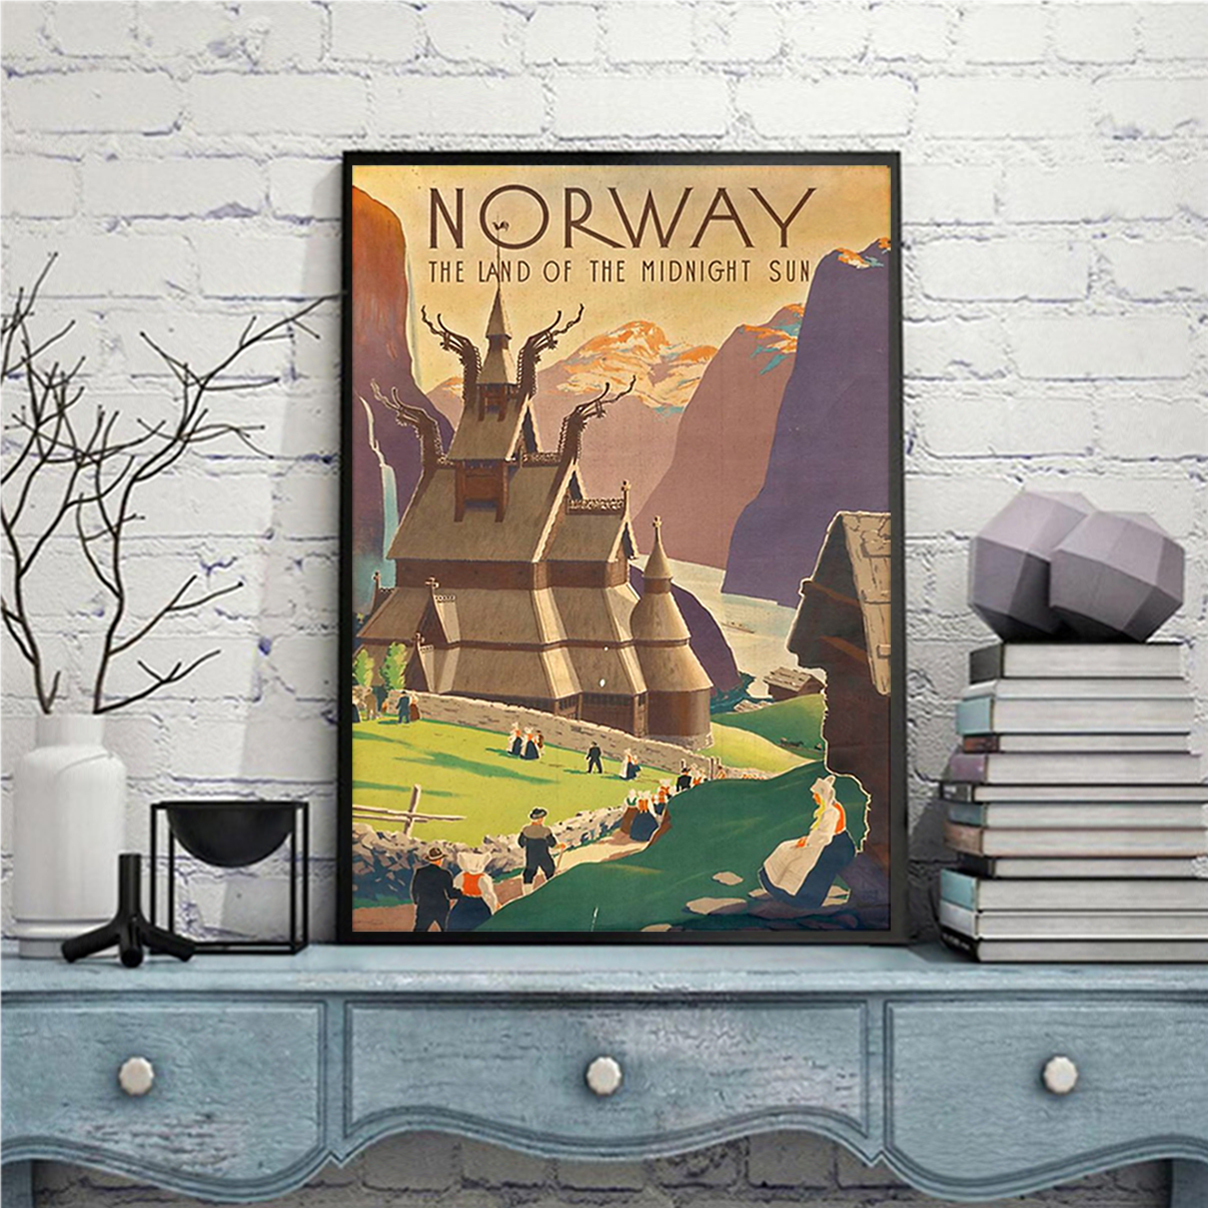 Norway the land of the midnight sun poster A1